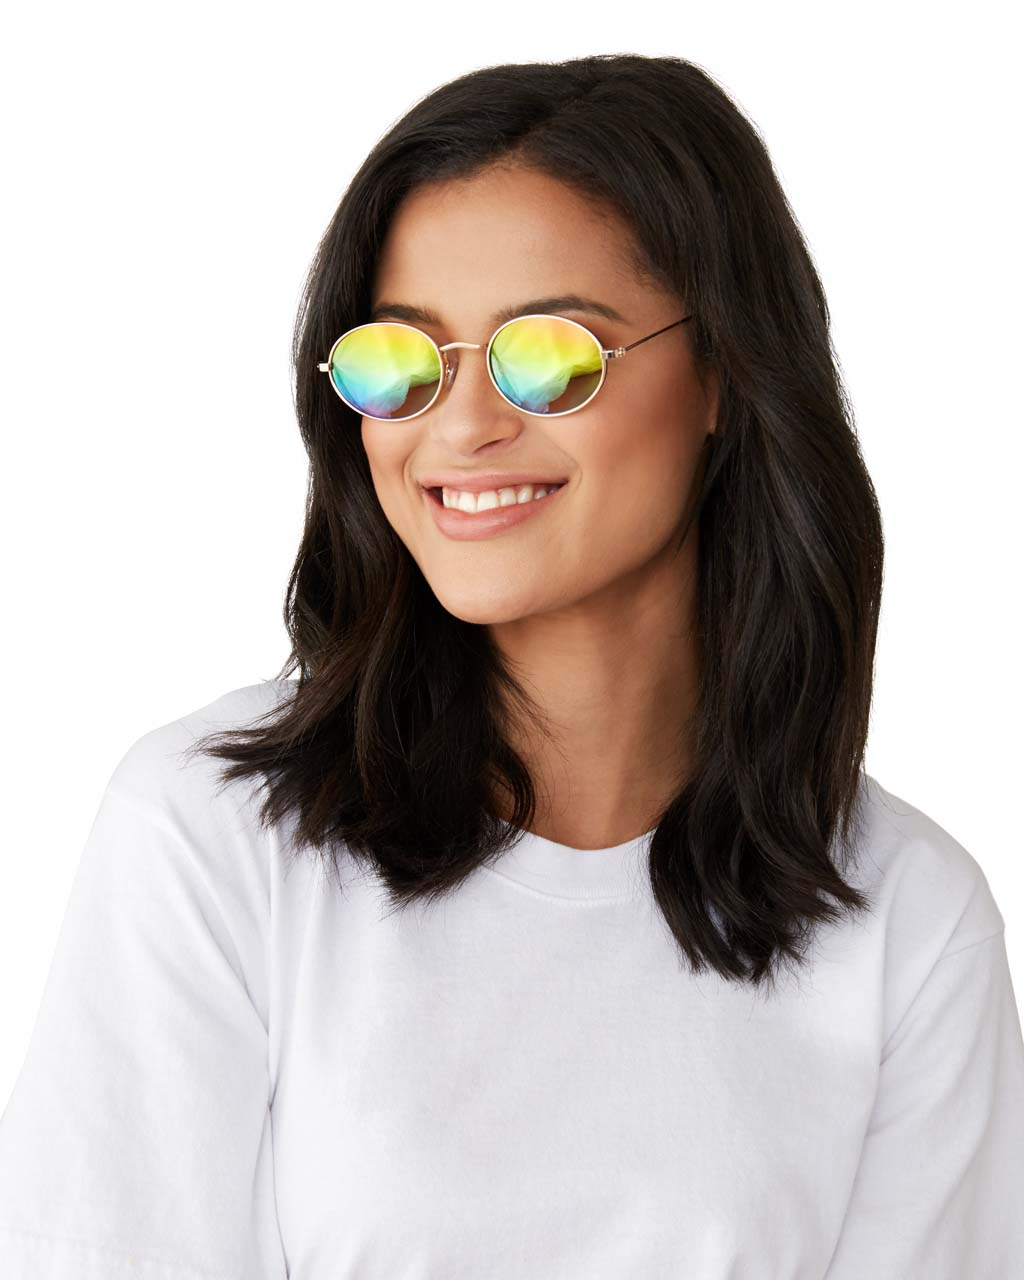 woman wearing sunglasses with gold metal frame and metallic rainbow lenses